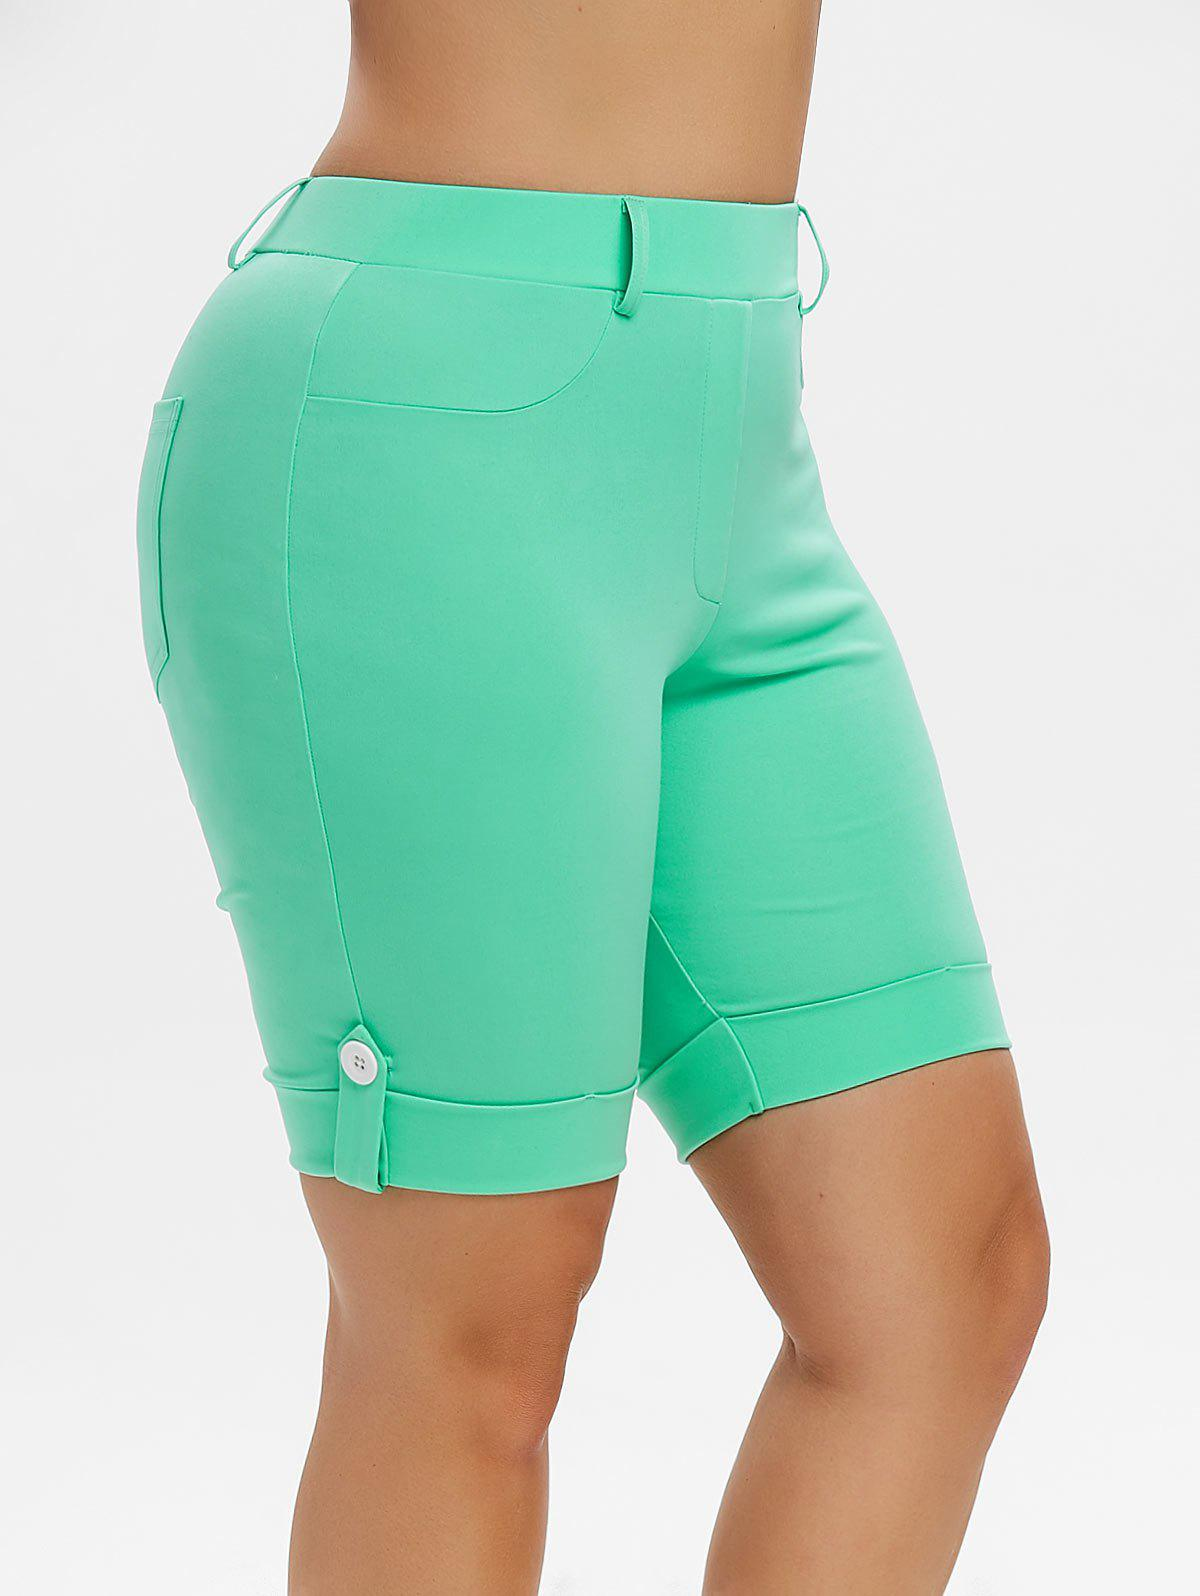 Plus Size Pockets Cuffed Shorts - LIGHT AQUAMARINE 4X